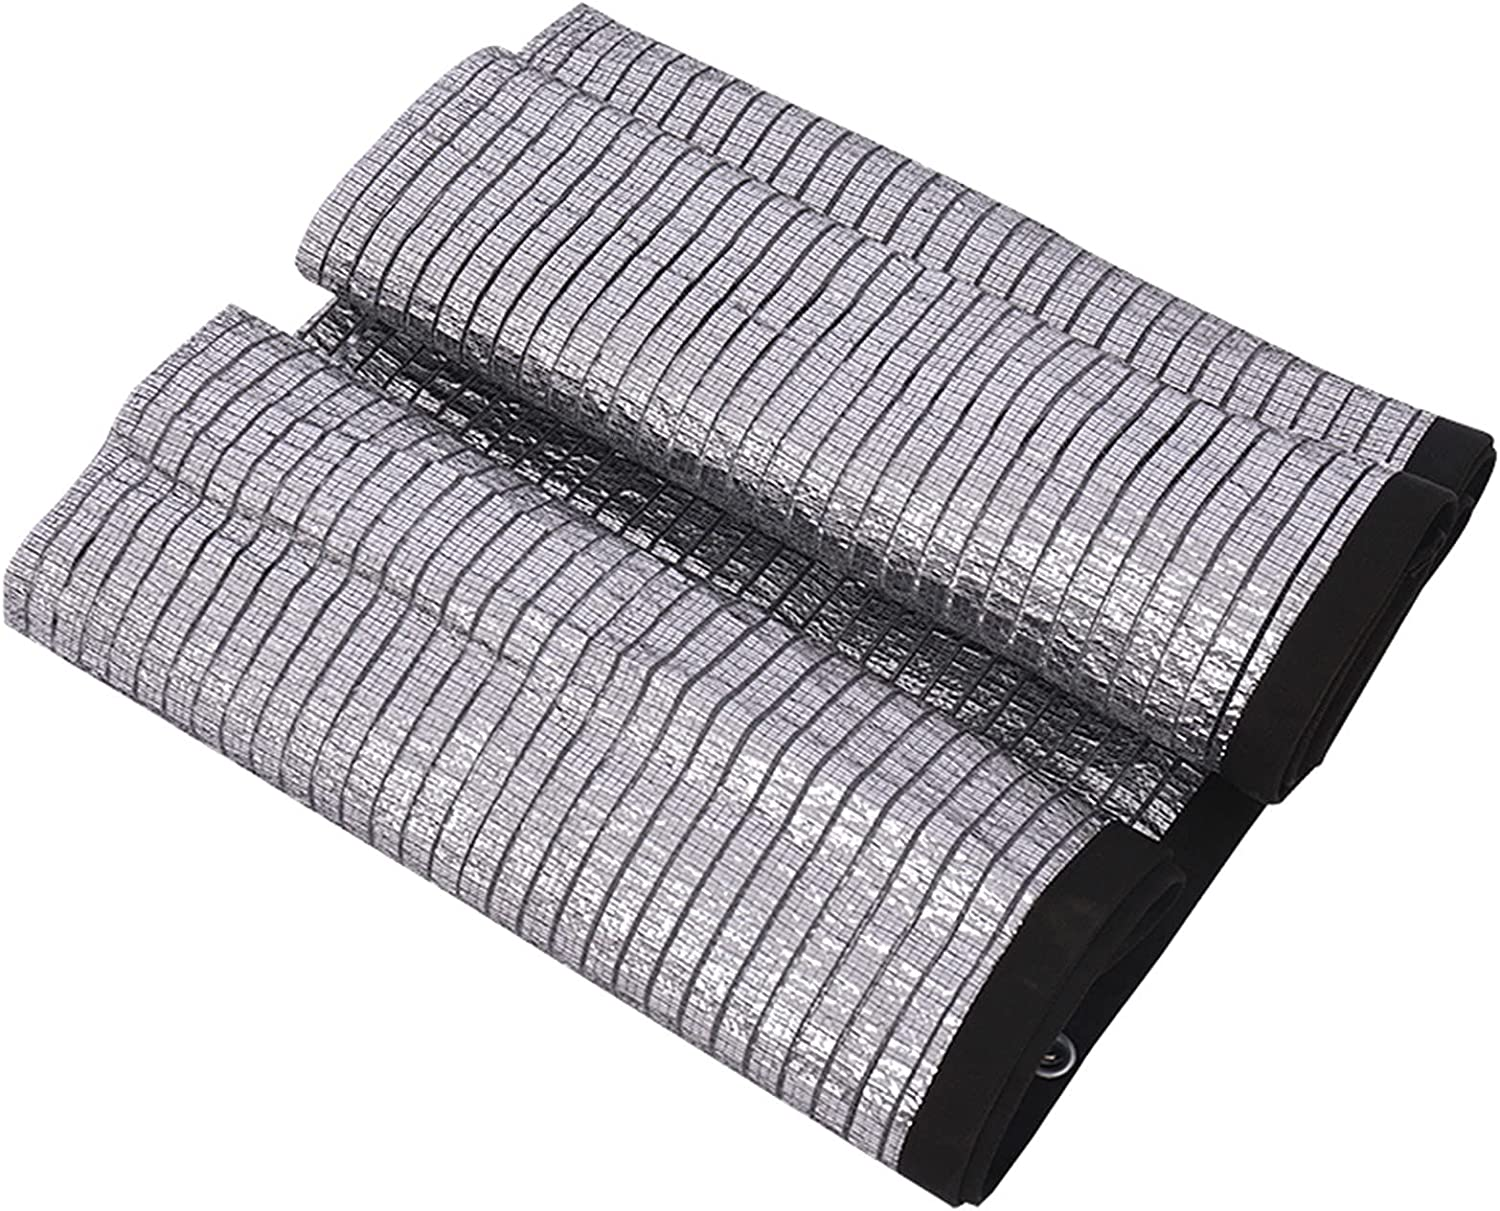 Limited time for free shipping Shade Cloth Rapid rise Reflective Aluminet Silver Rectangle Sunblock Sunsc